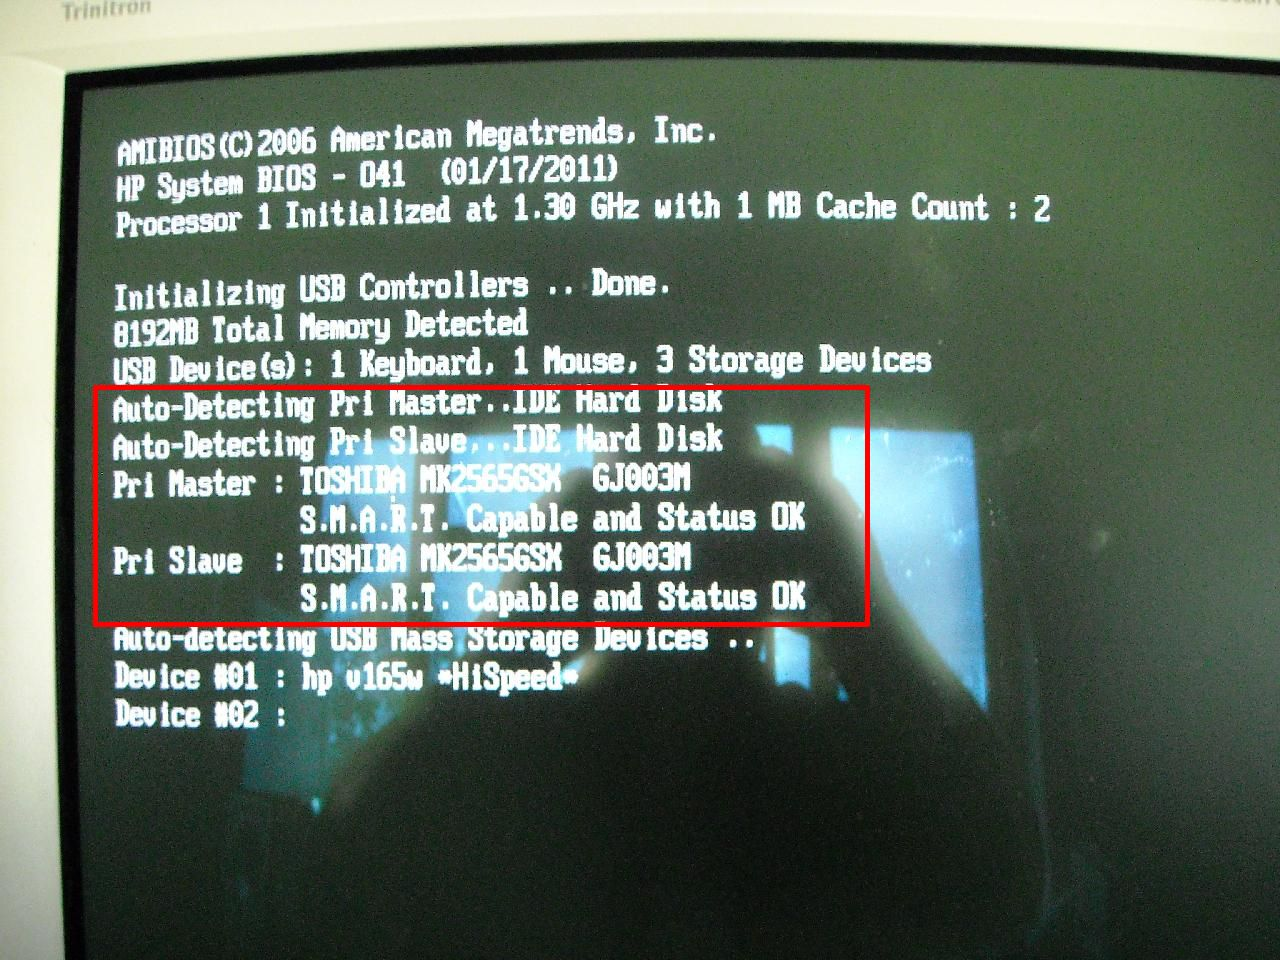 Tweaking HP ProLiant MicroServer BIOS to support 2 additional AHCI